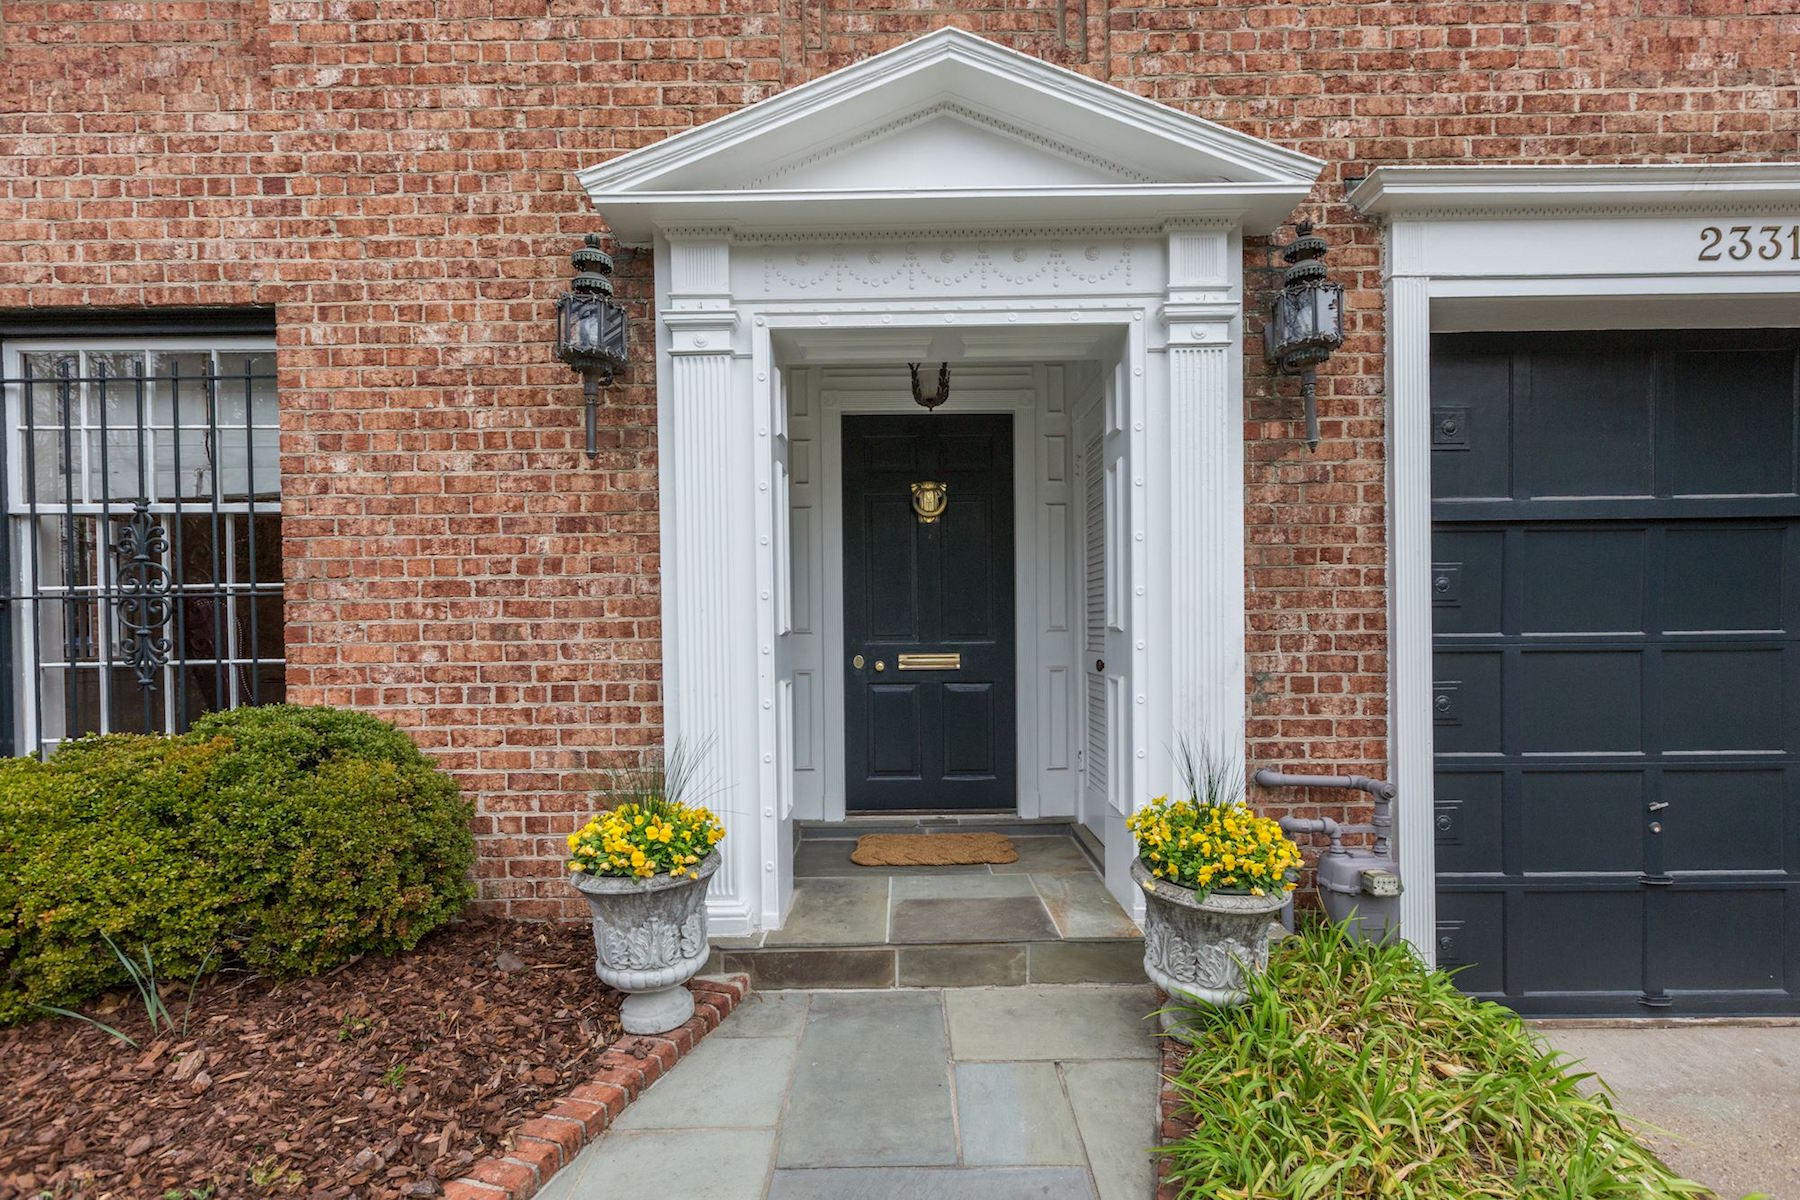 Single Family Home for Sale at Kalorama 2331 California Street Nw Washington, District Of Columbia 20008 United States